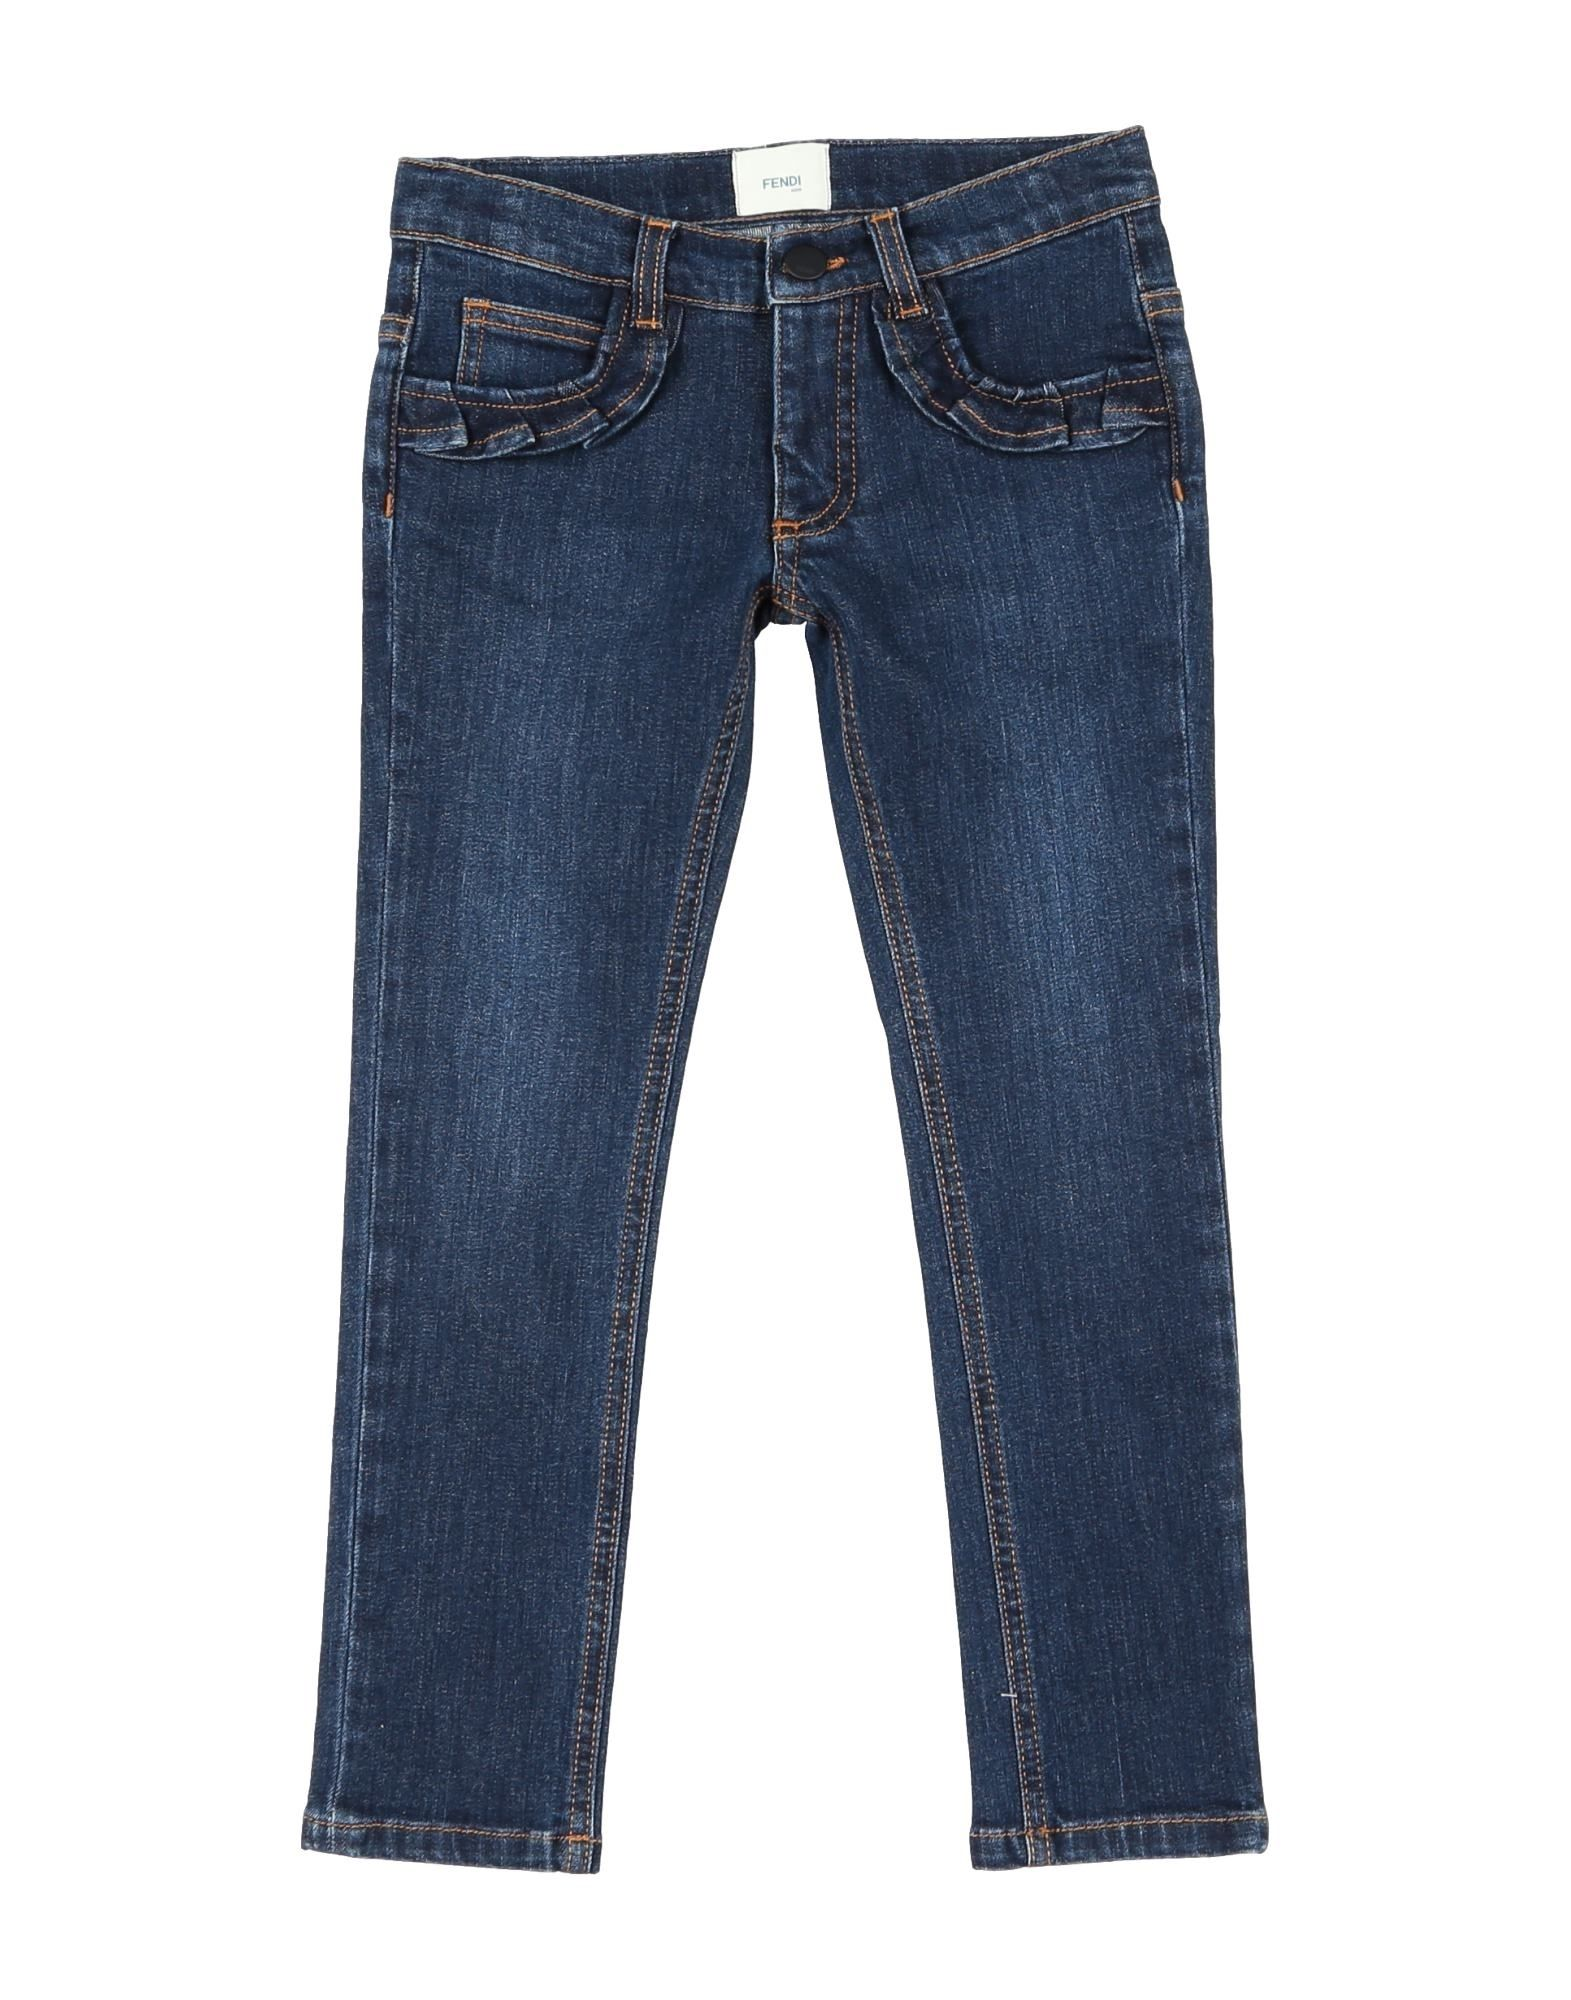 FENDI | FENDI Denim Pants 42740289 | Goxip